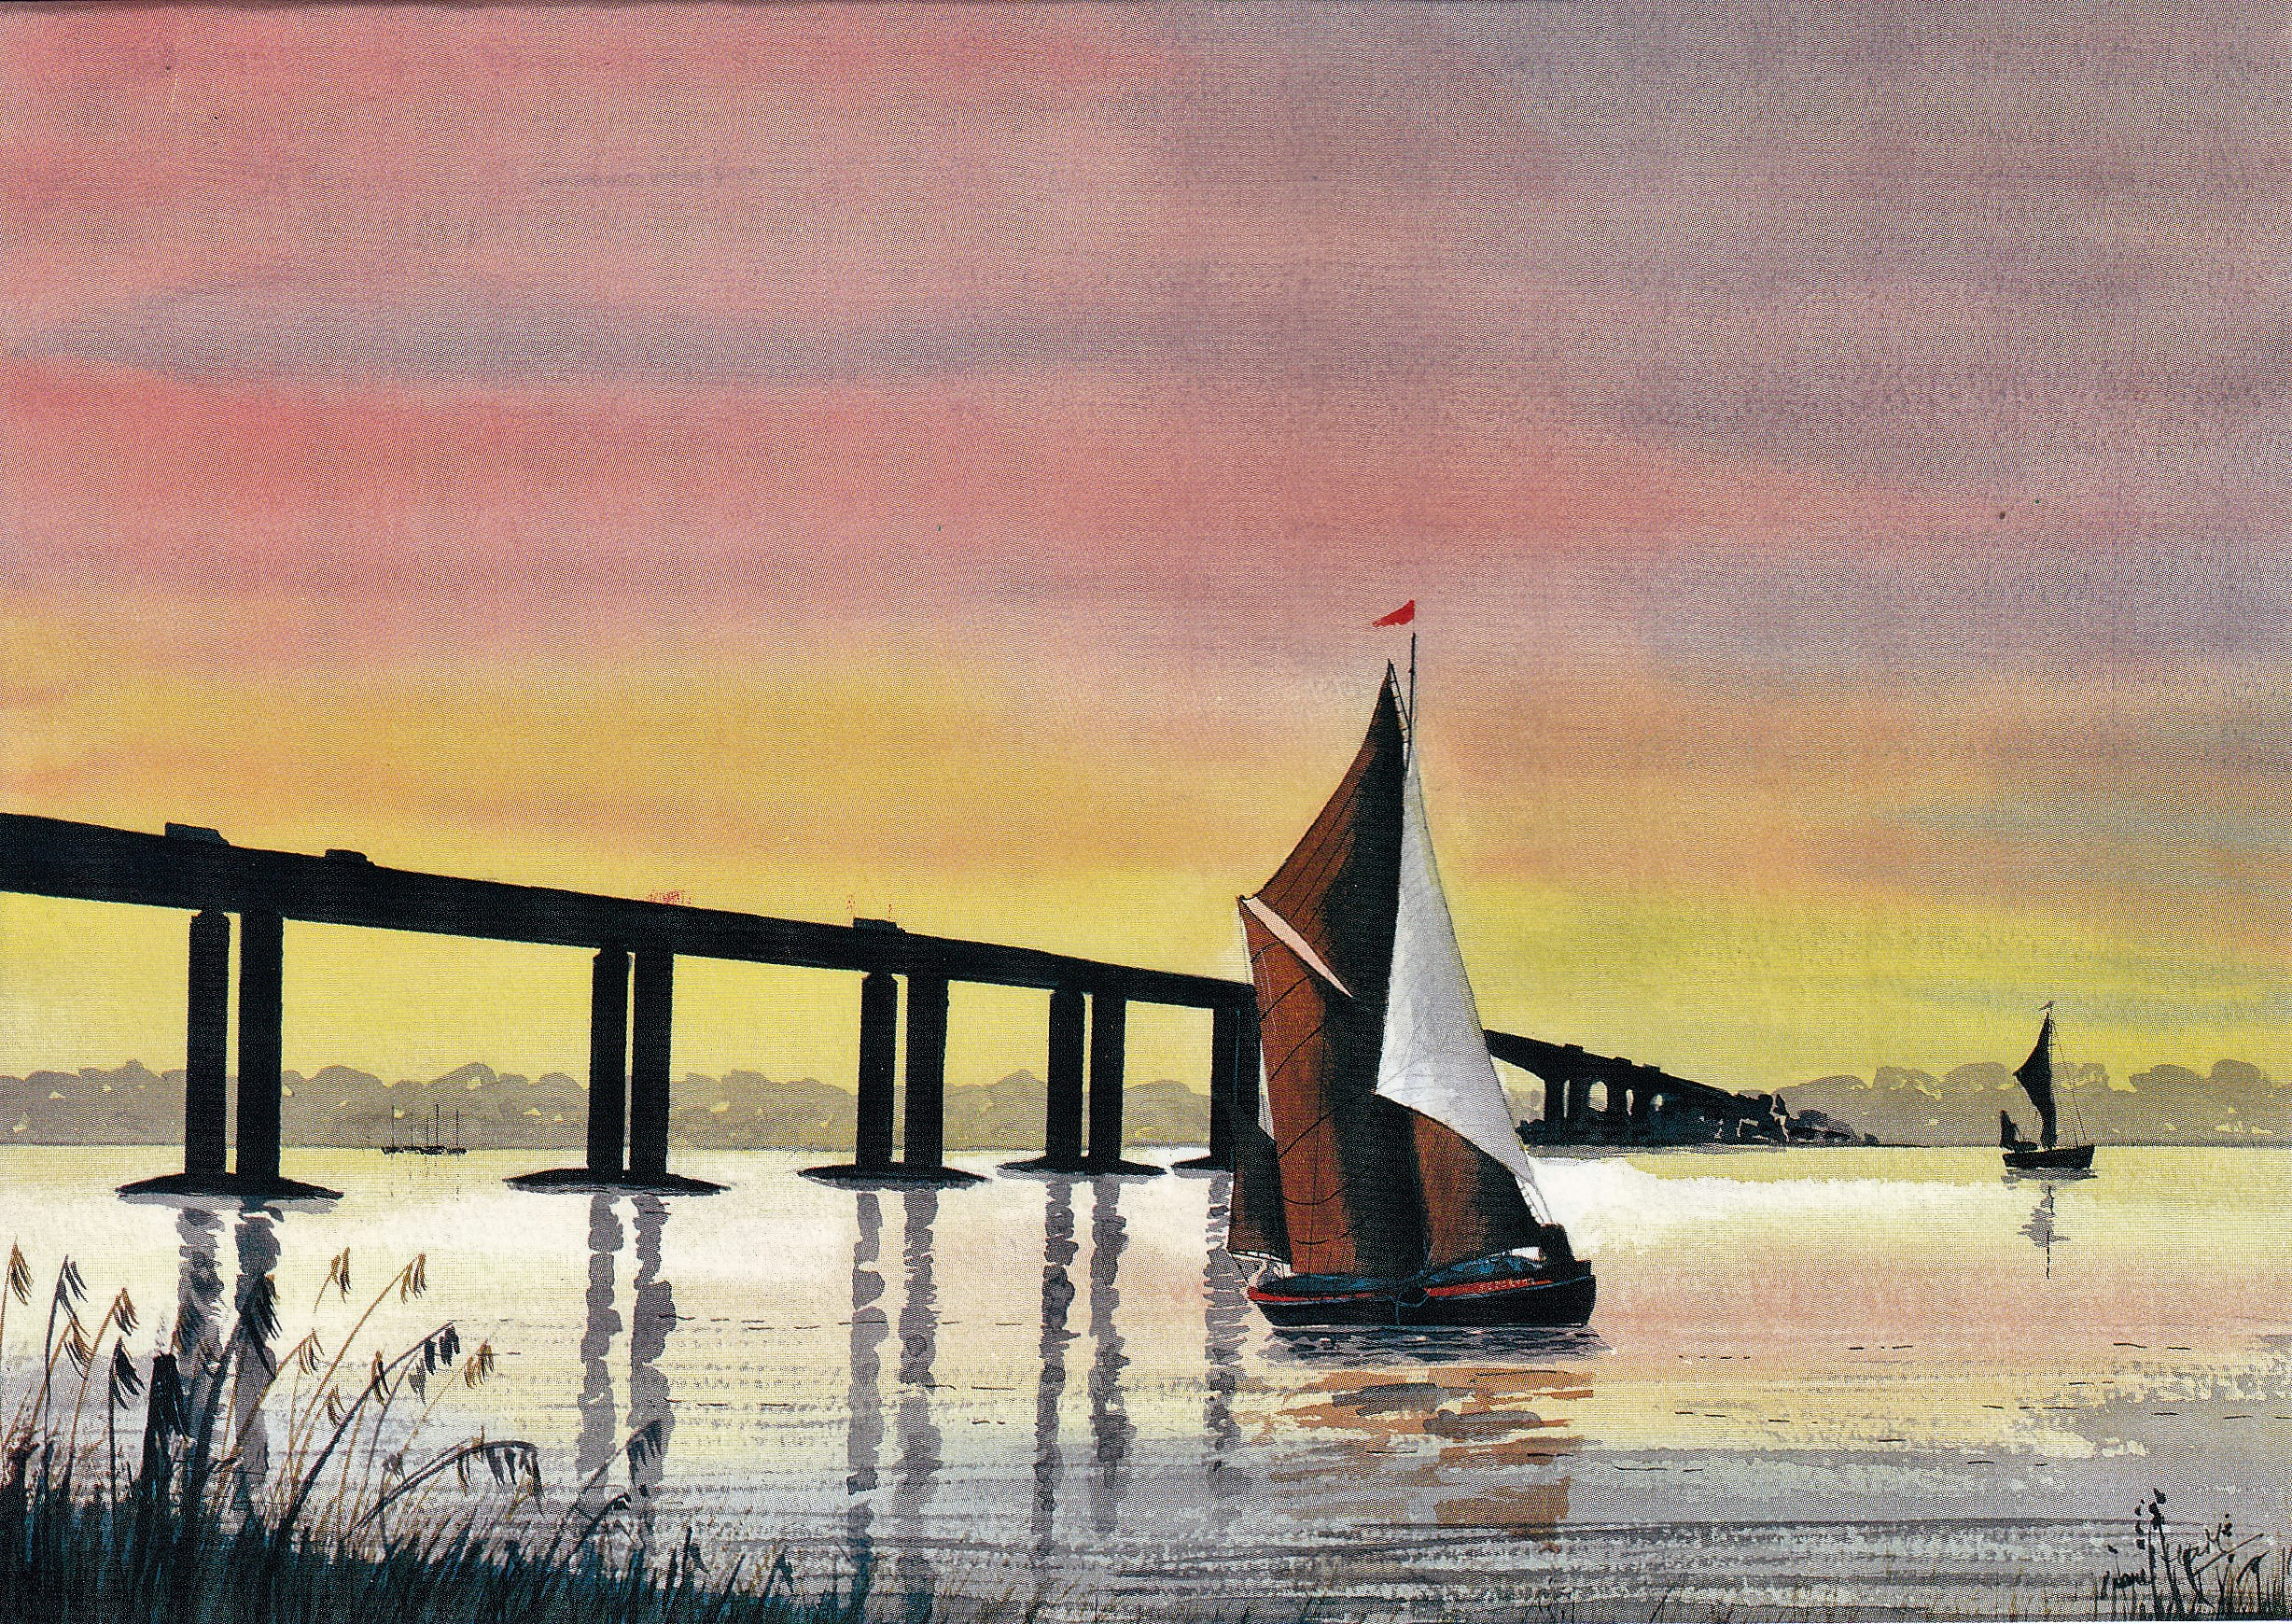 Thames Barge on the River Orwell